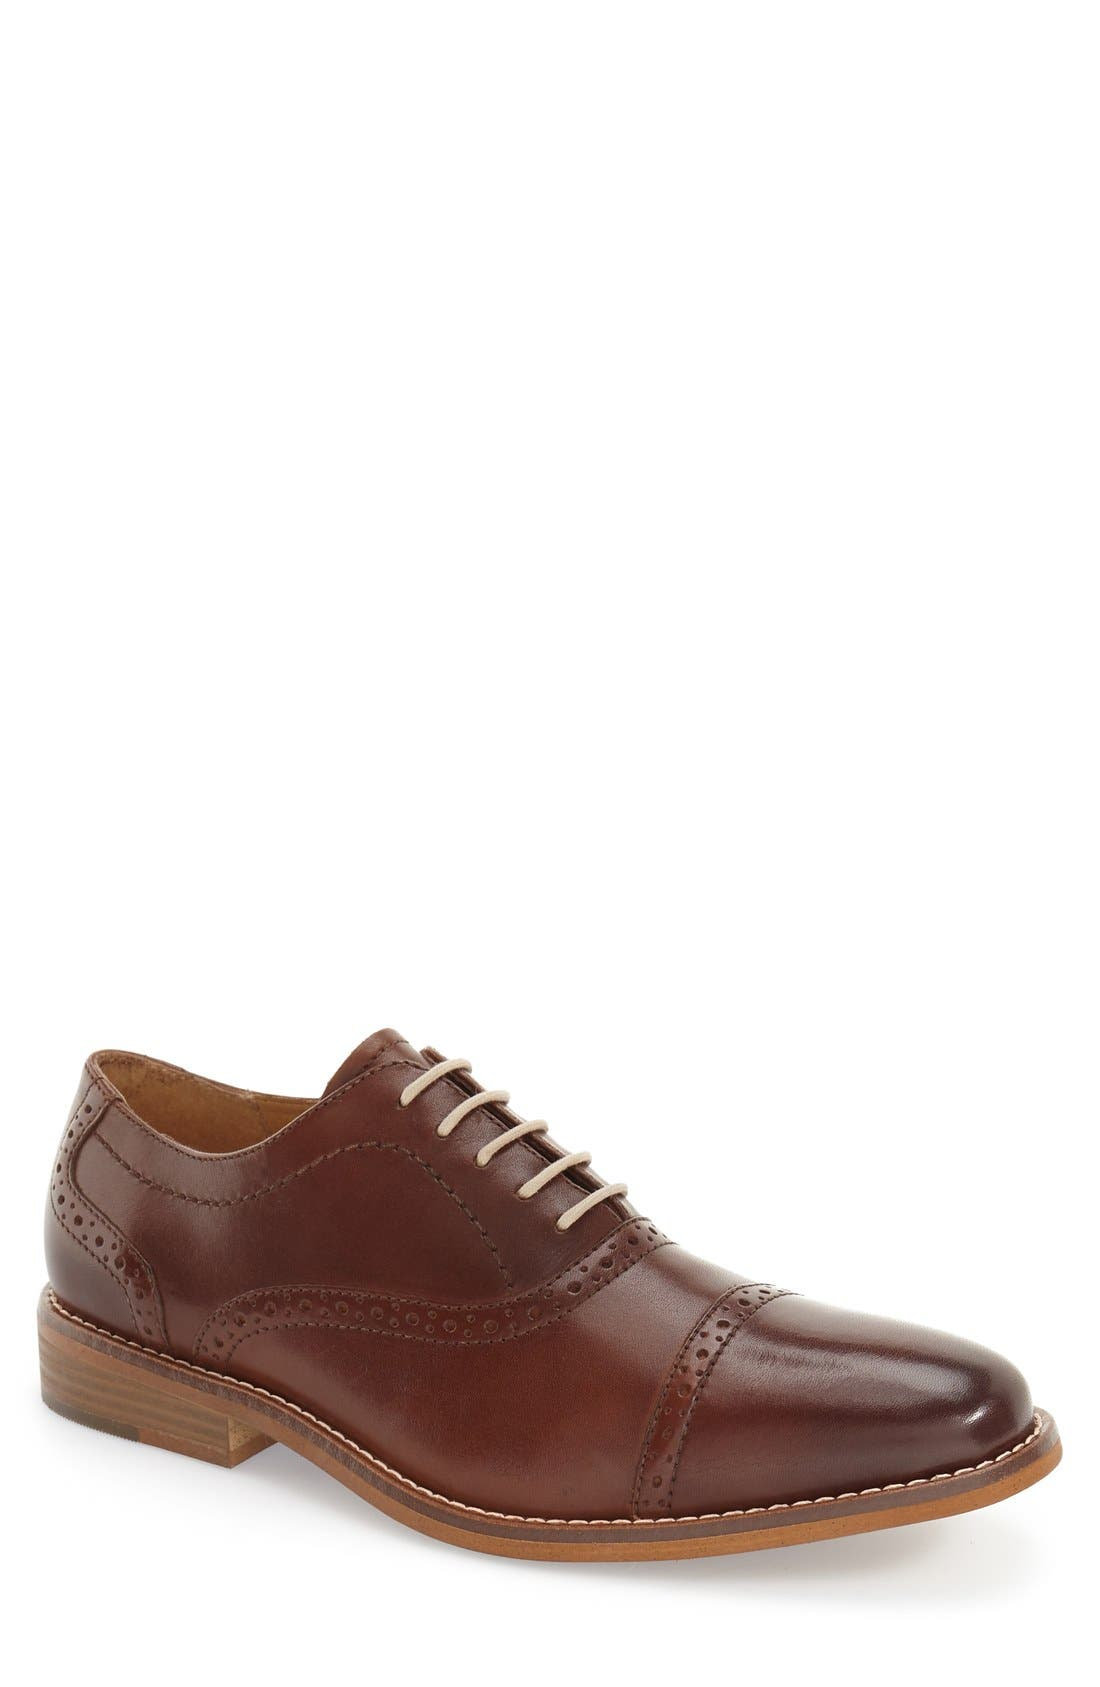 G.H. BASS & CO. 'Carnell' Cap Toe Oxford